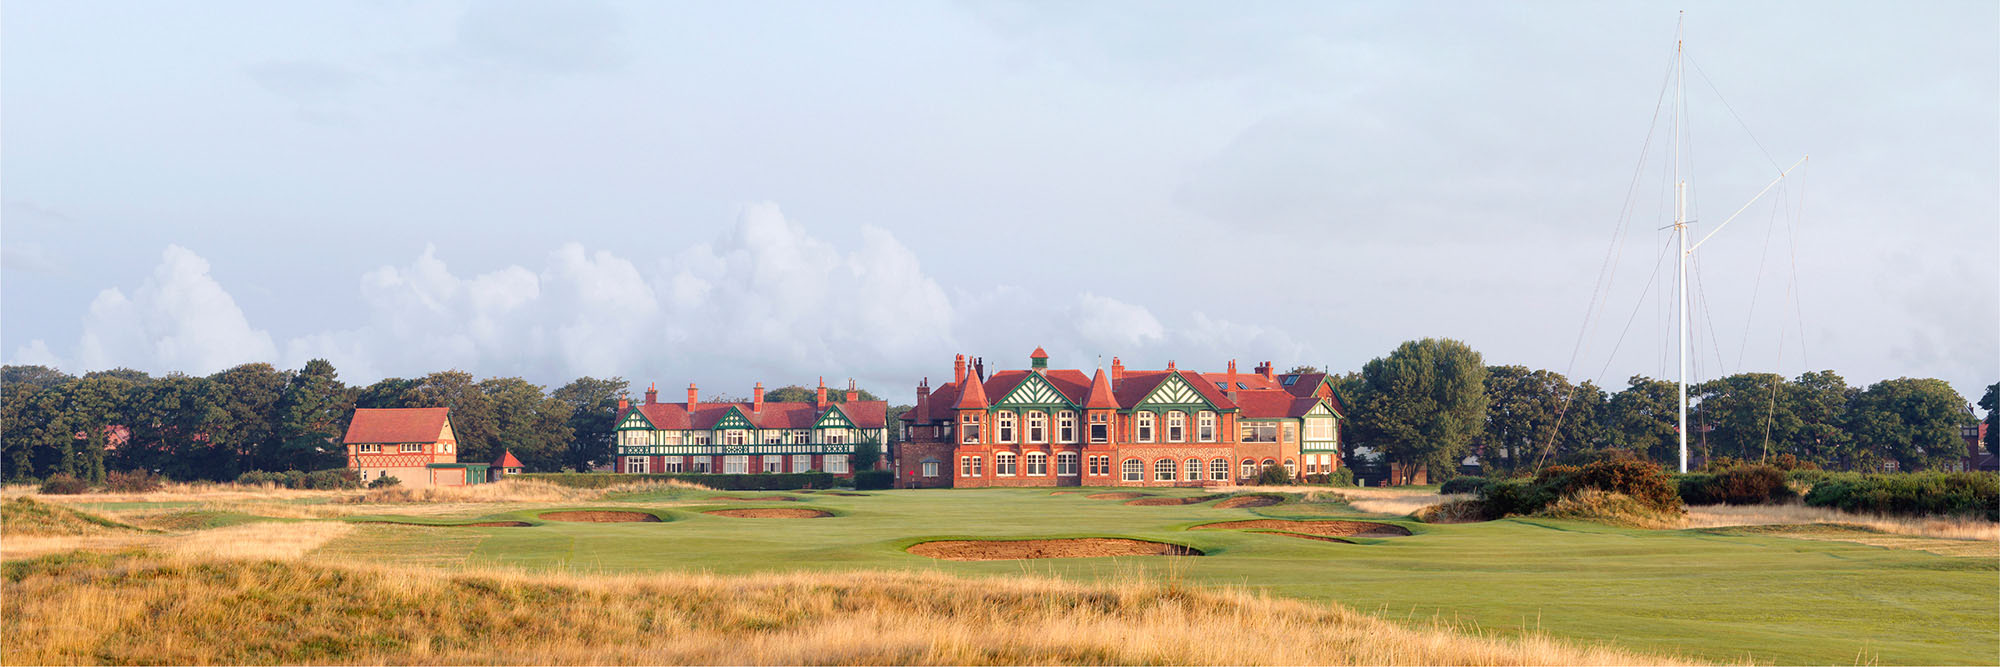 Golf Course Image - Royal Lytham and St. Anne's No. 18